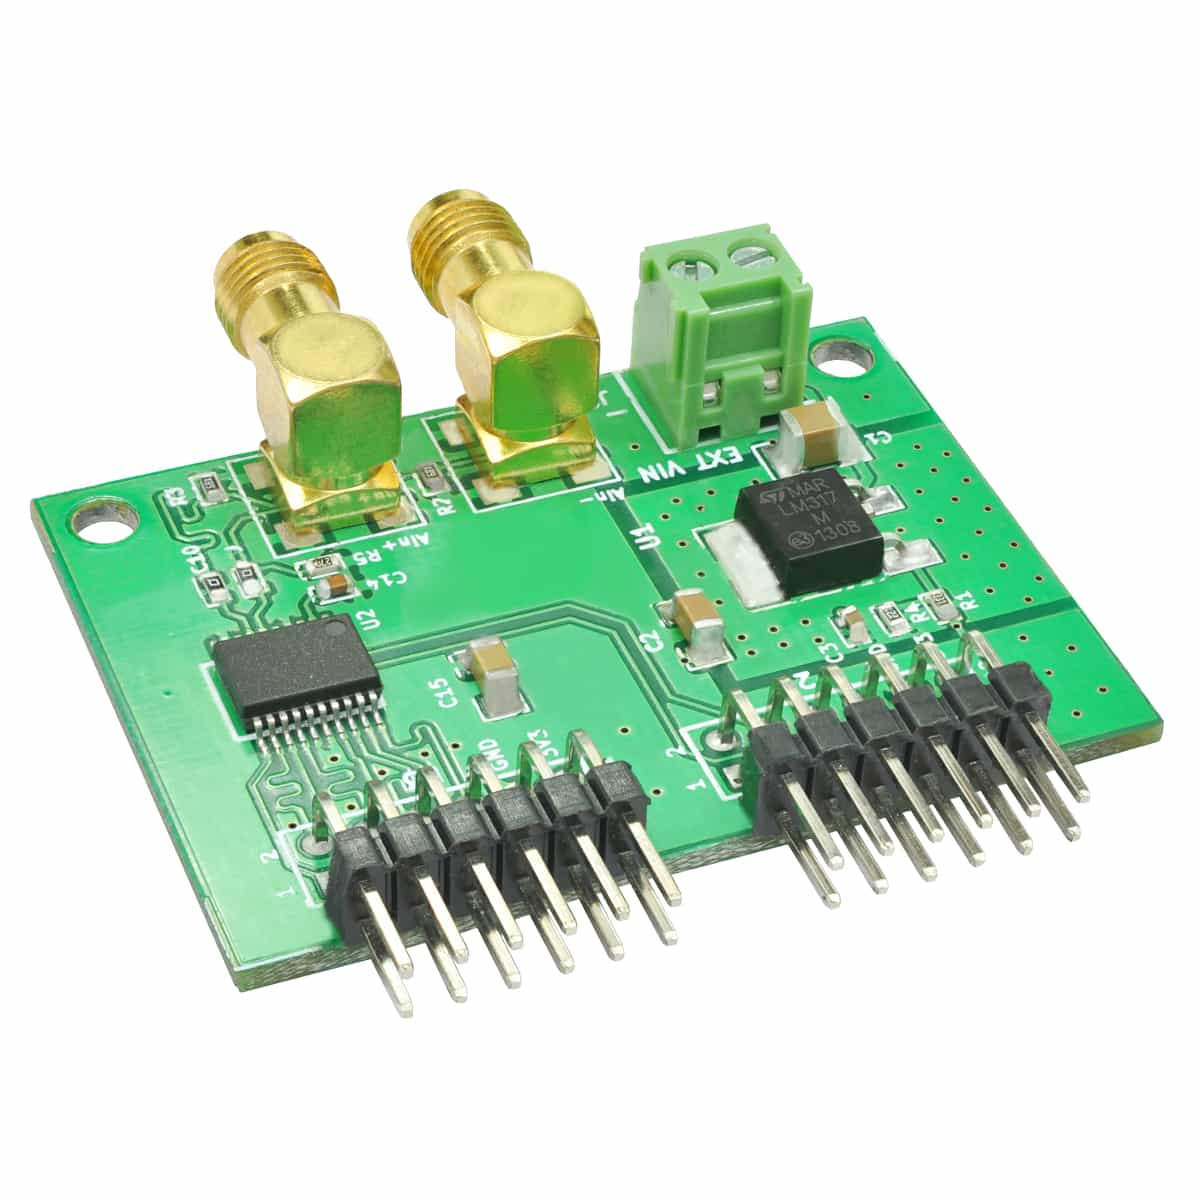 AD9283 ADC Expansion Module -100 MSPS Conversion rate